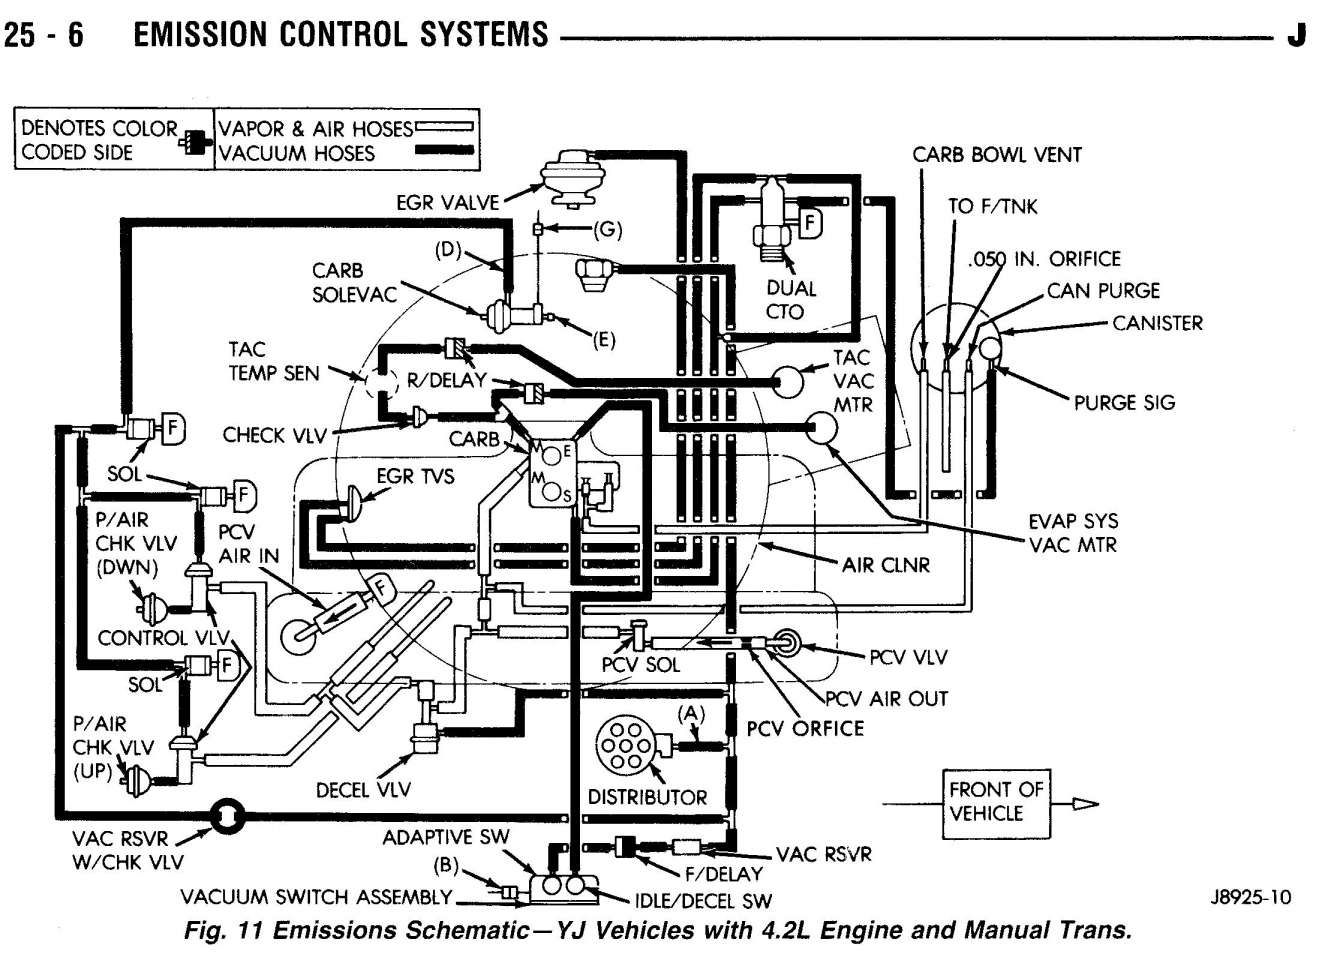 12 1988 Jeep Wrangler Engine Wiring Diagram Engine Diagram Wiringg Net In 2020 Jeep Wrangler Engine Jeep Wrangler Jeep